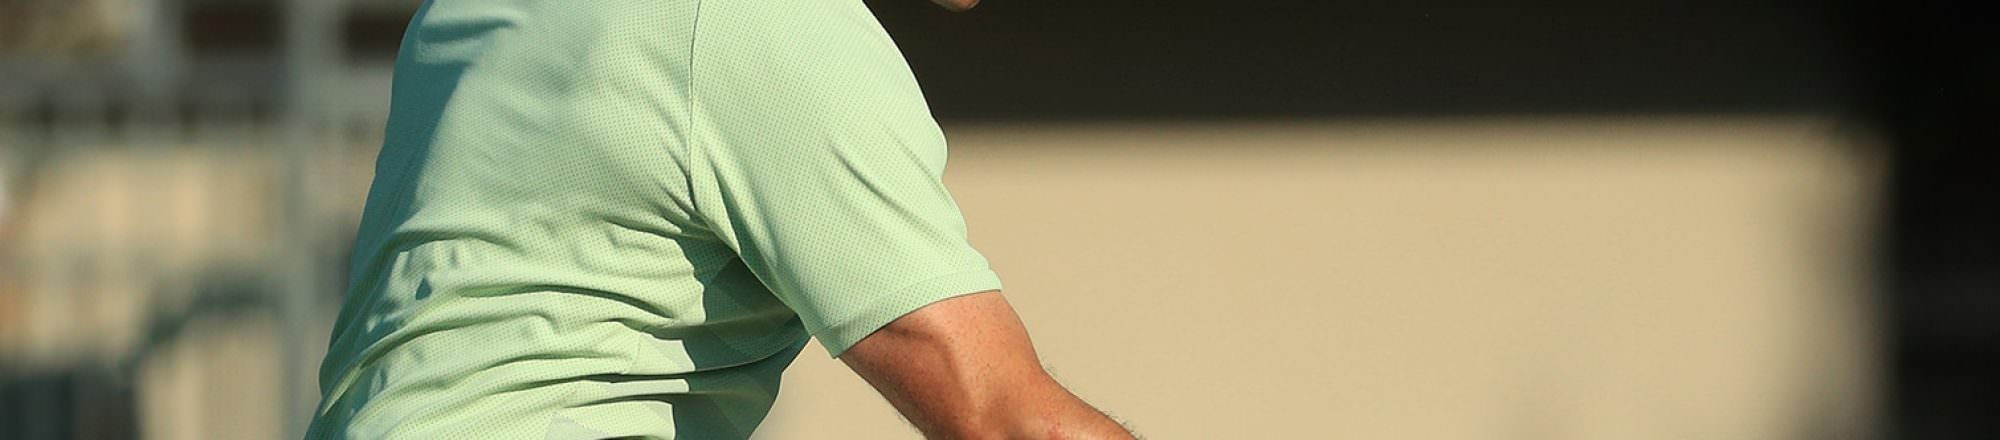 Magnificent McIlroy puts on a Sunday masterclass at Bay Hill